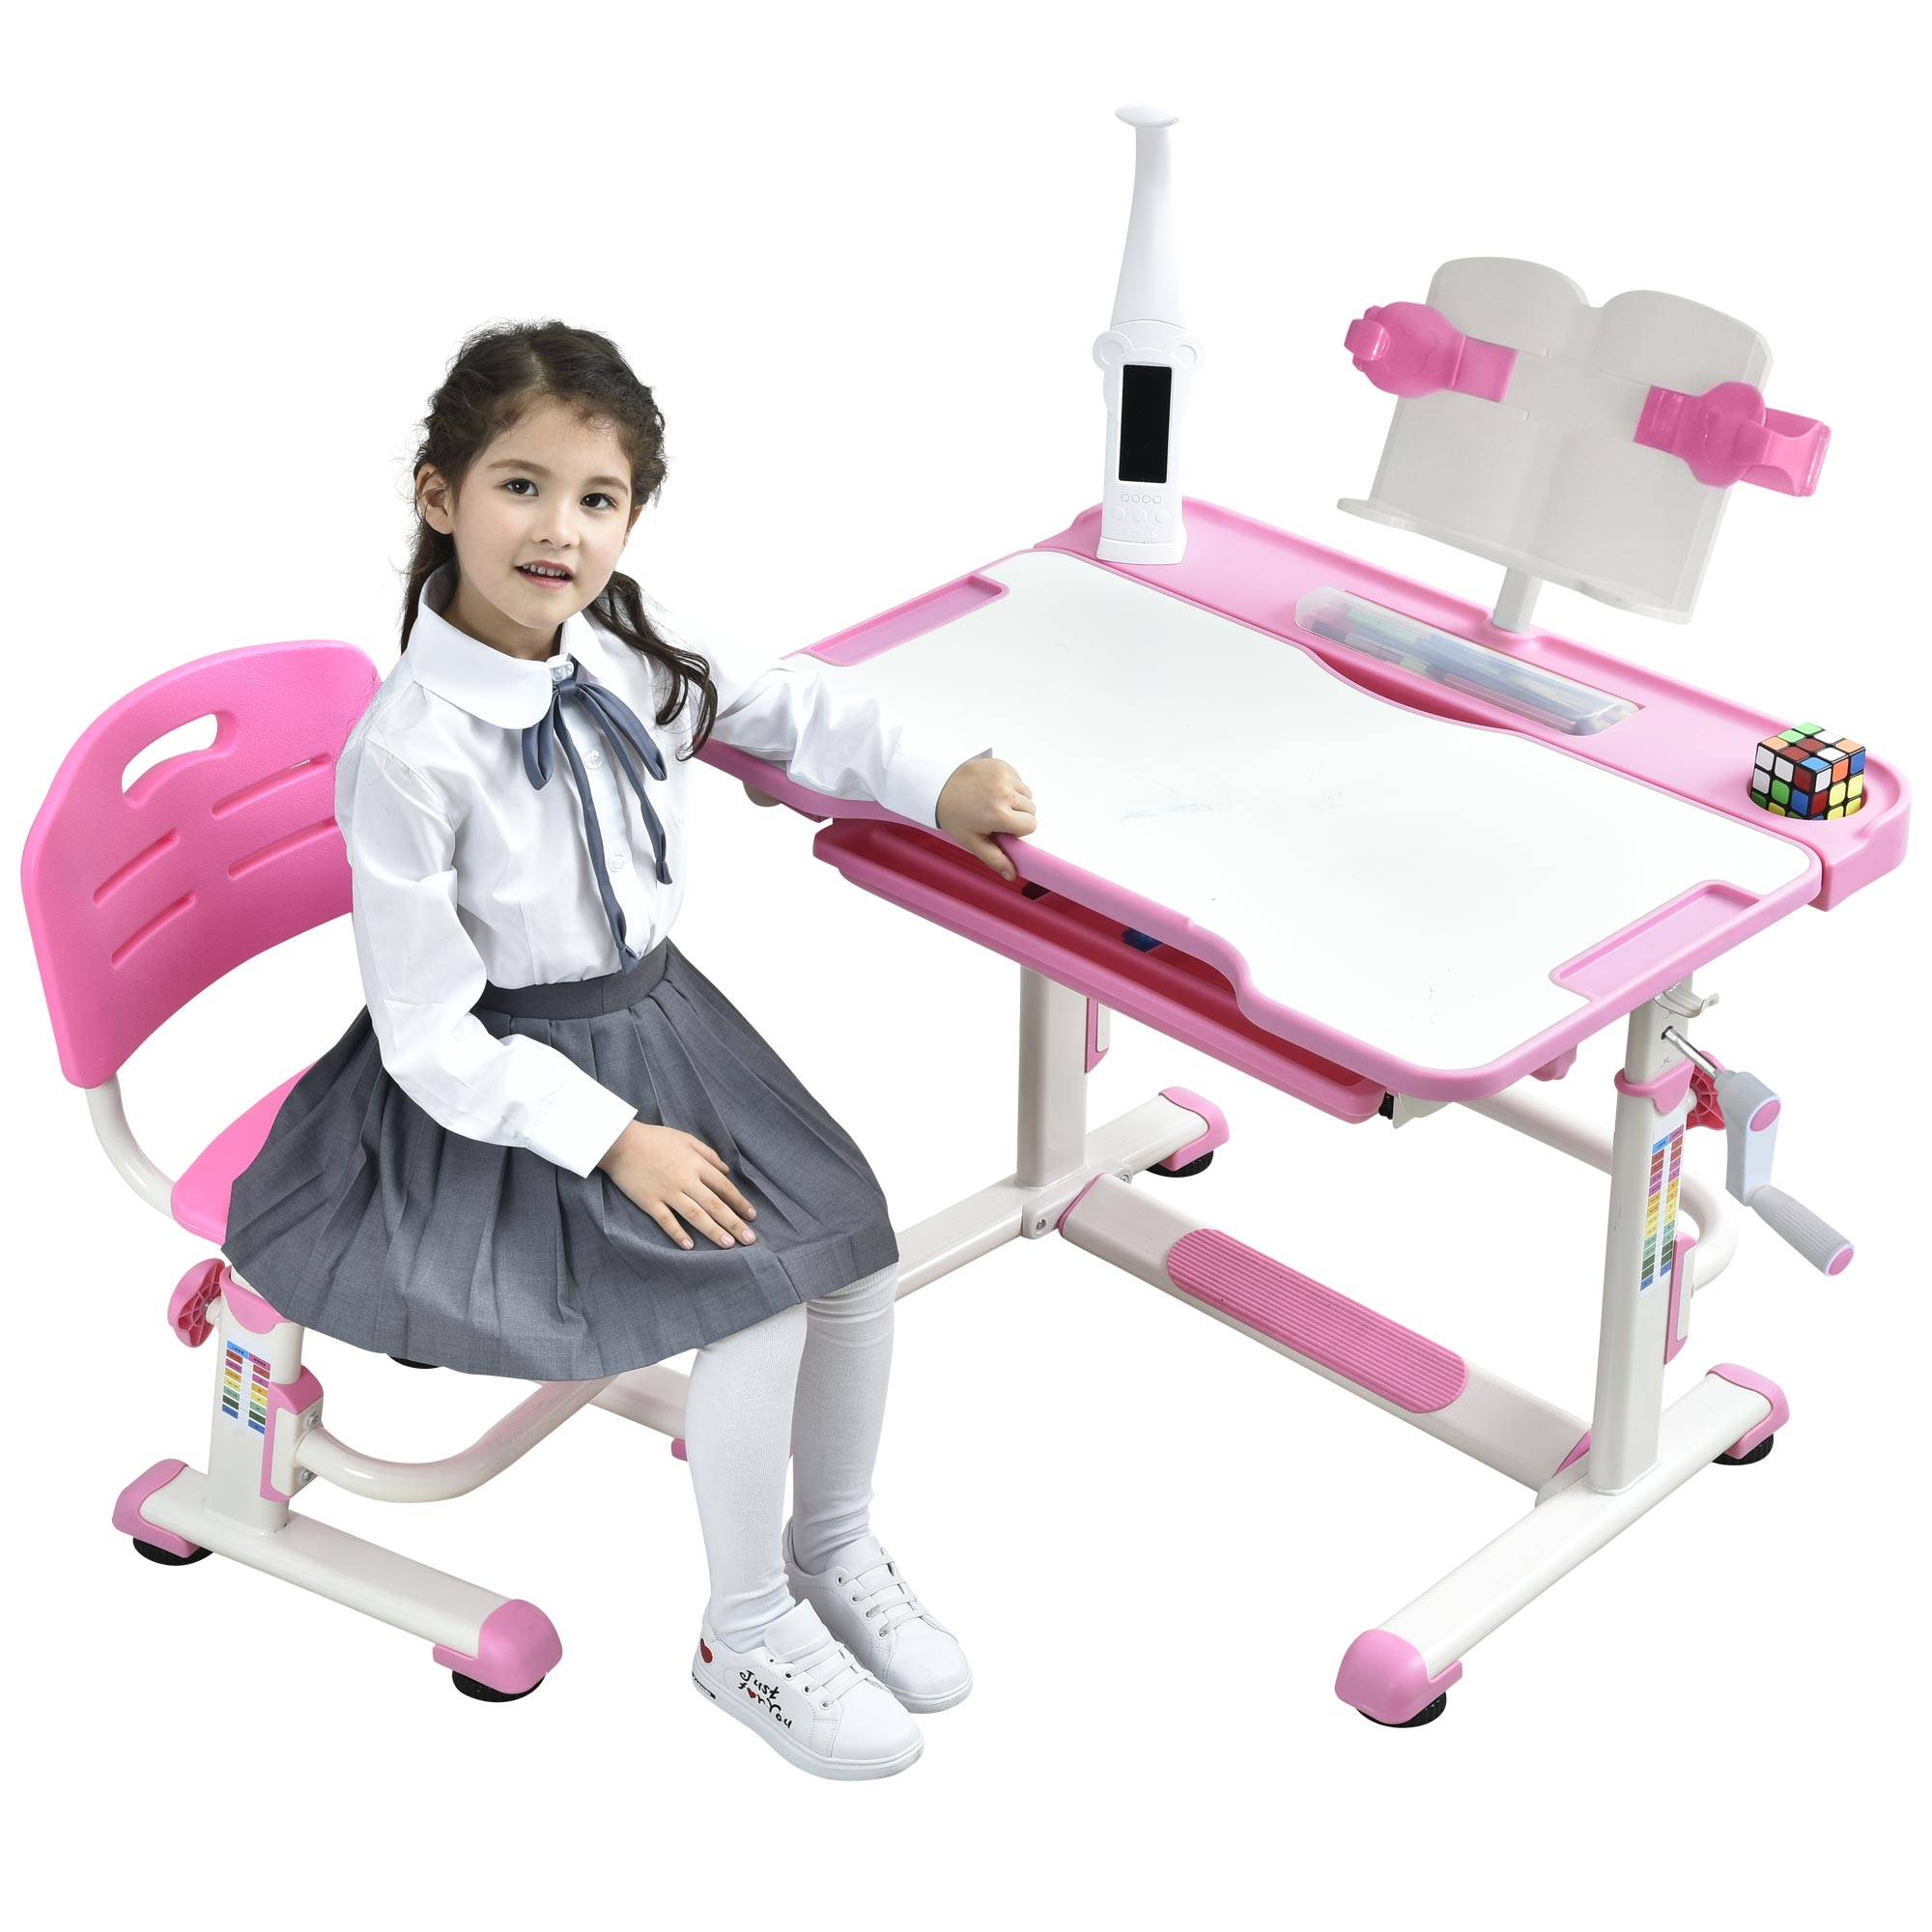 kids-desk-chair-height-adjustable-table-for-kids-Sprite-pink-desk-for-girls-01